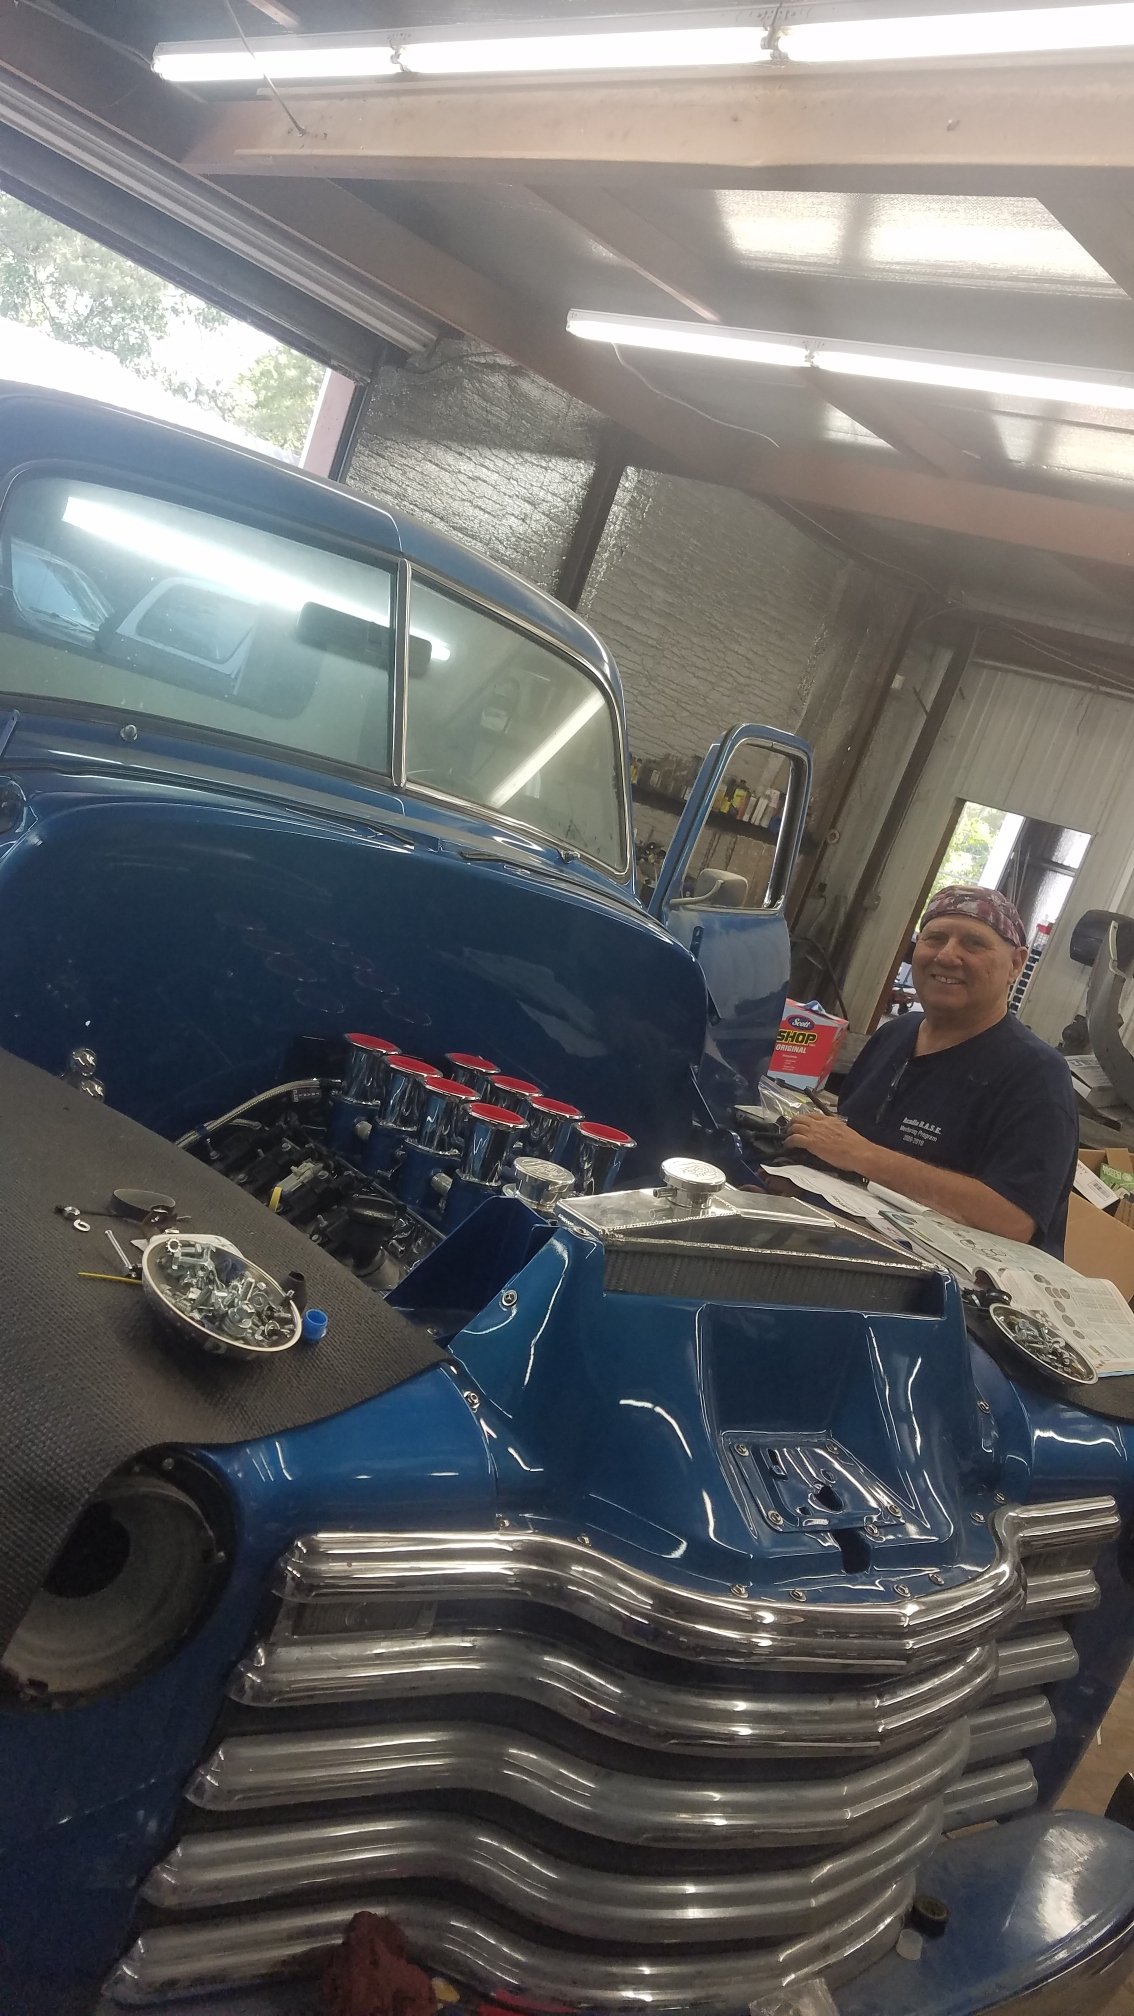 Dale's Auto Repair specializes in the complete maintenance and repair of all foreign and domestic vehicles for your family or business.